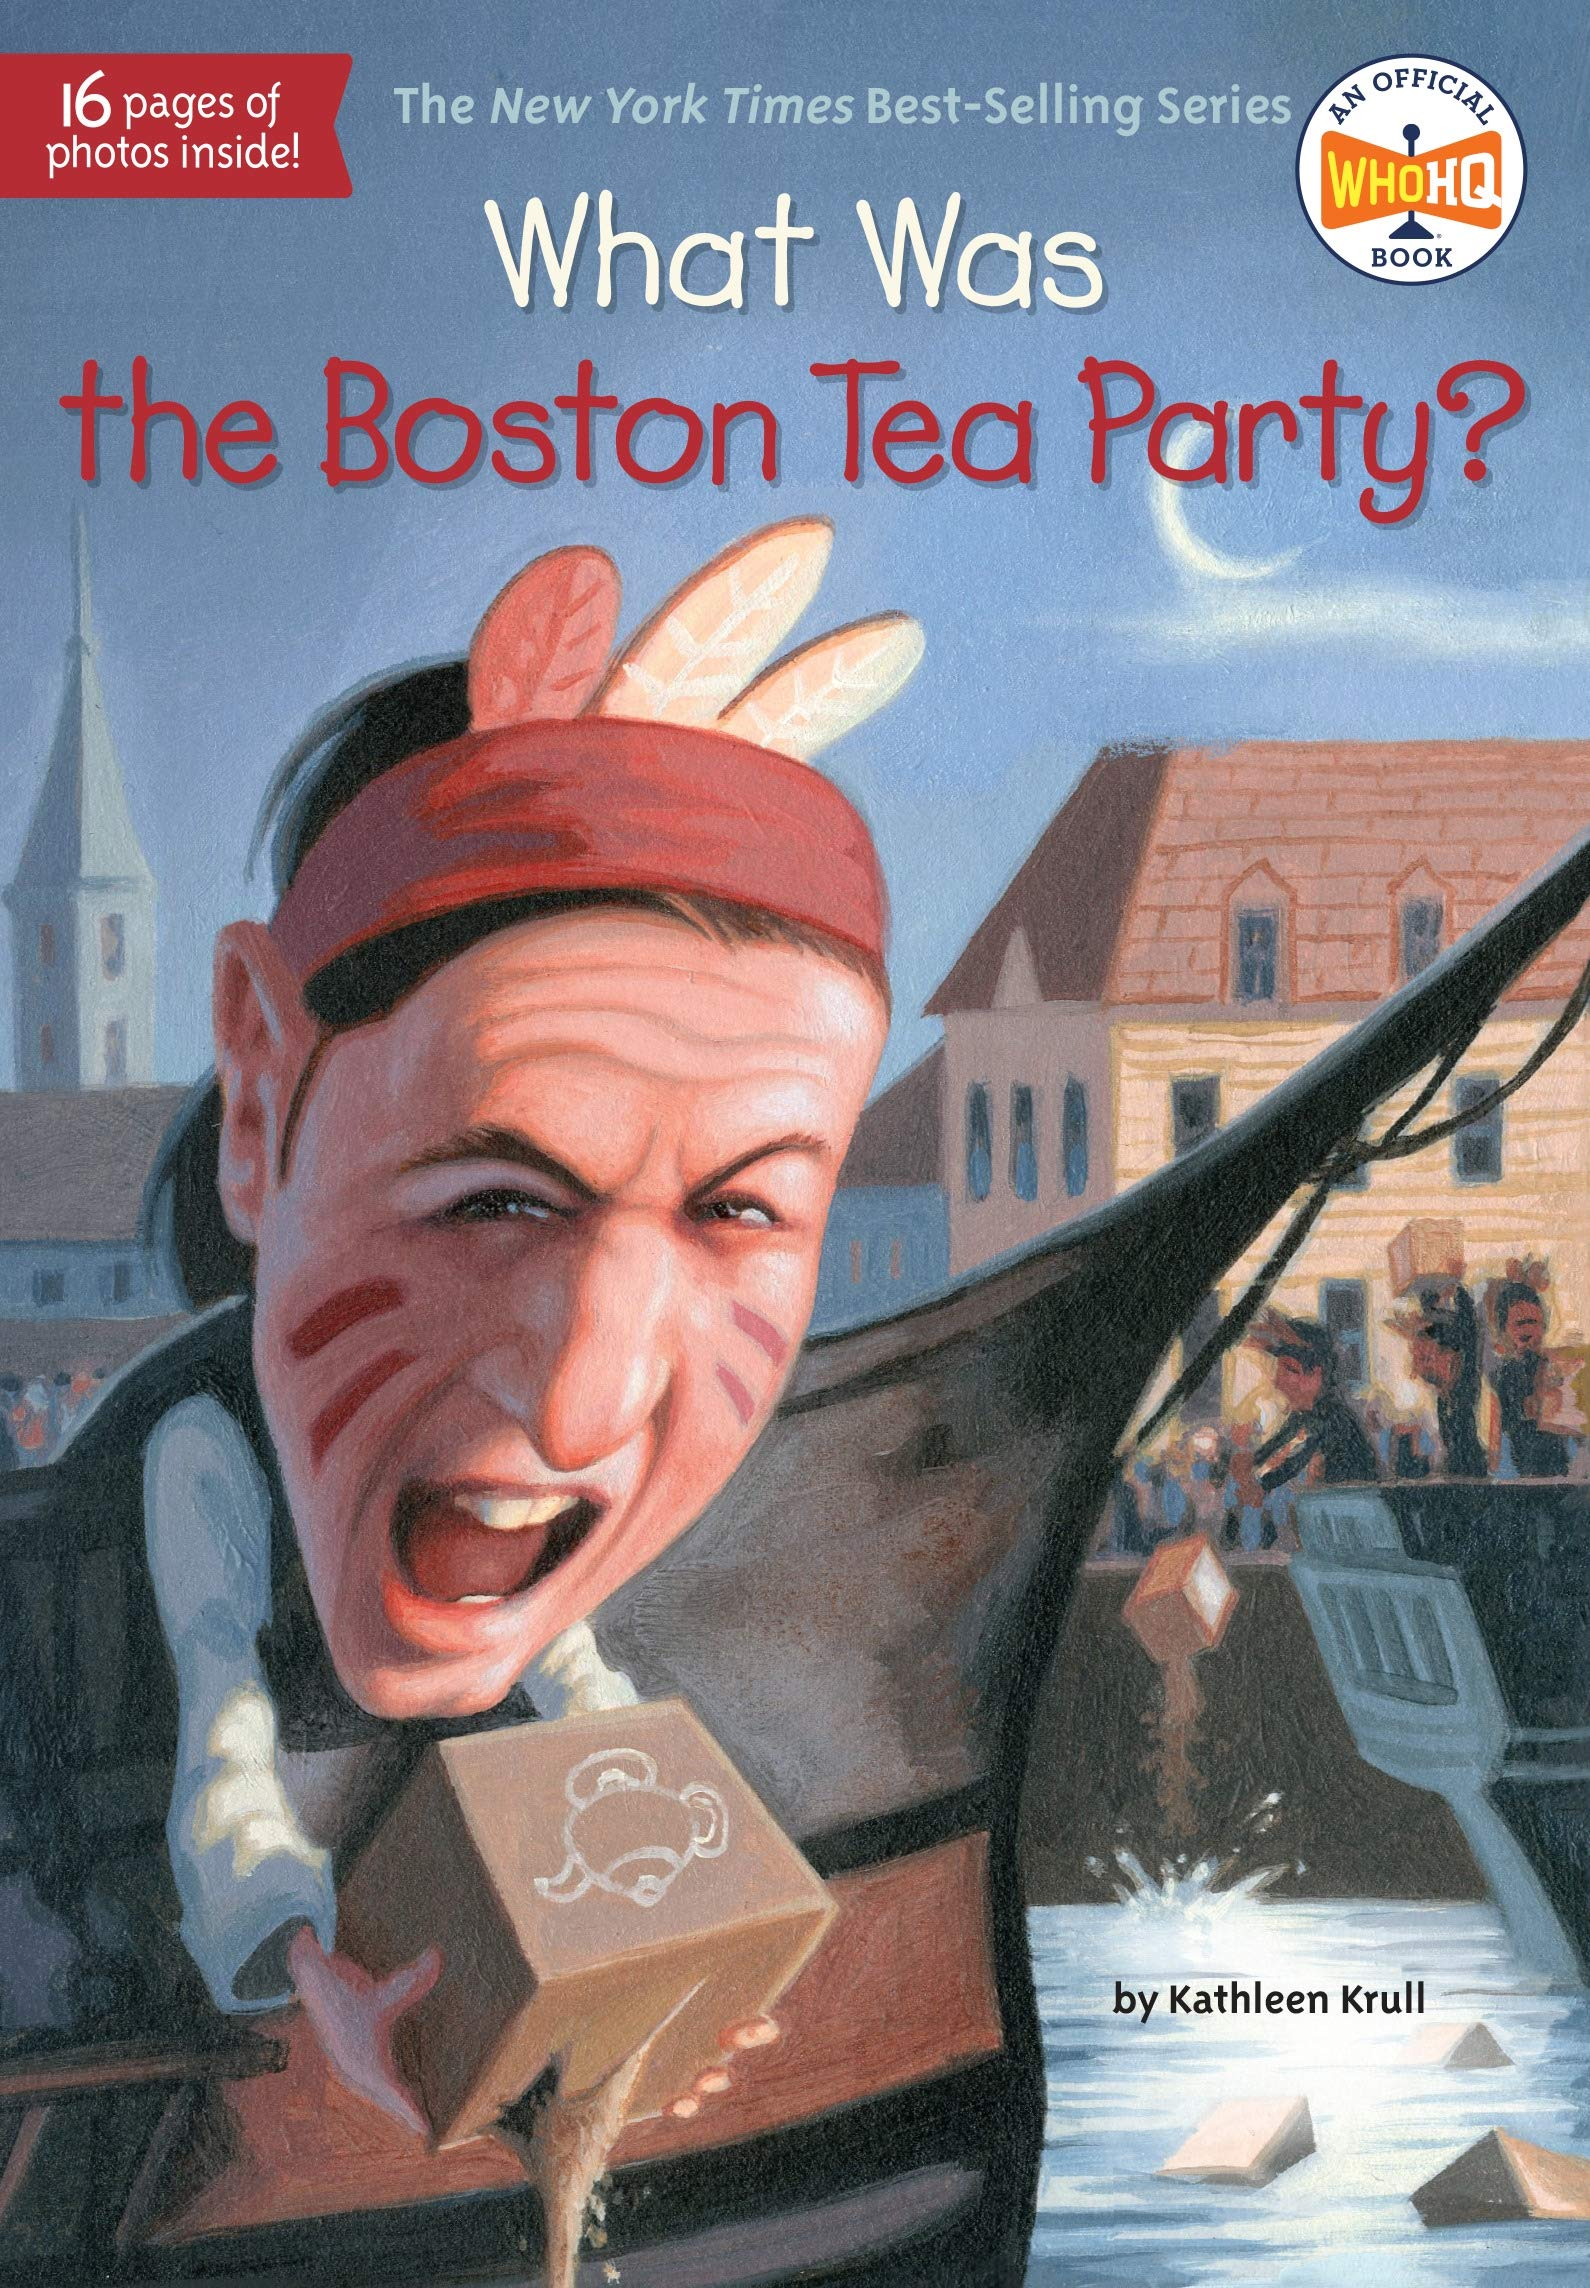 what was the date of the boston tea party